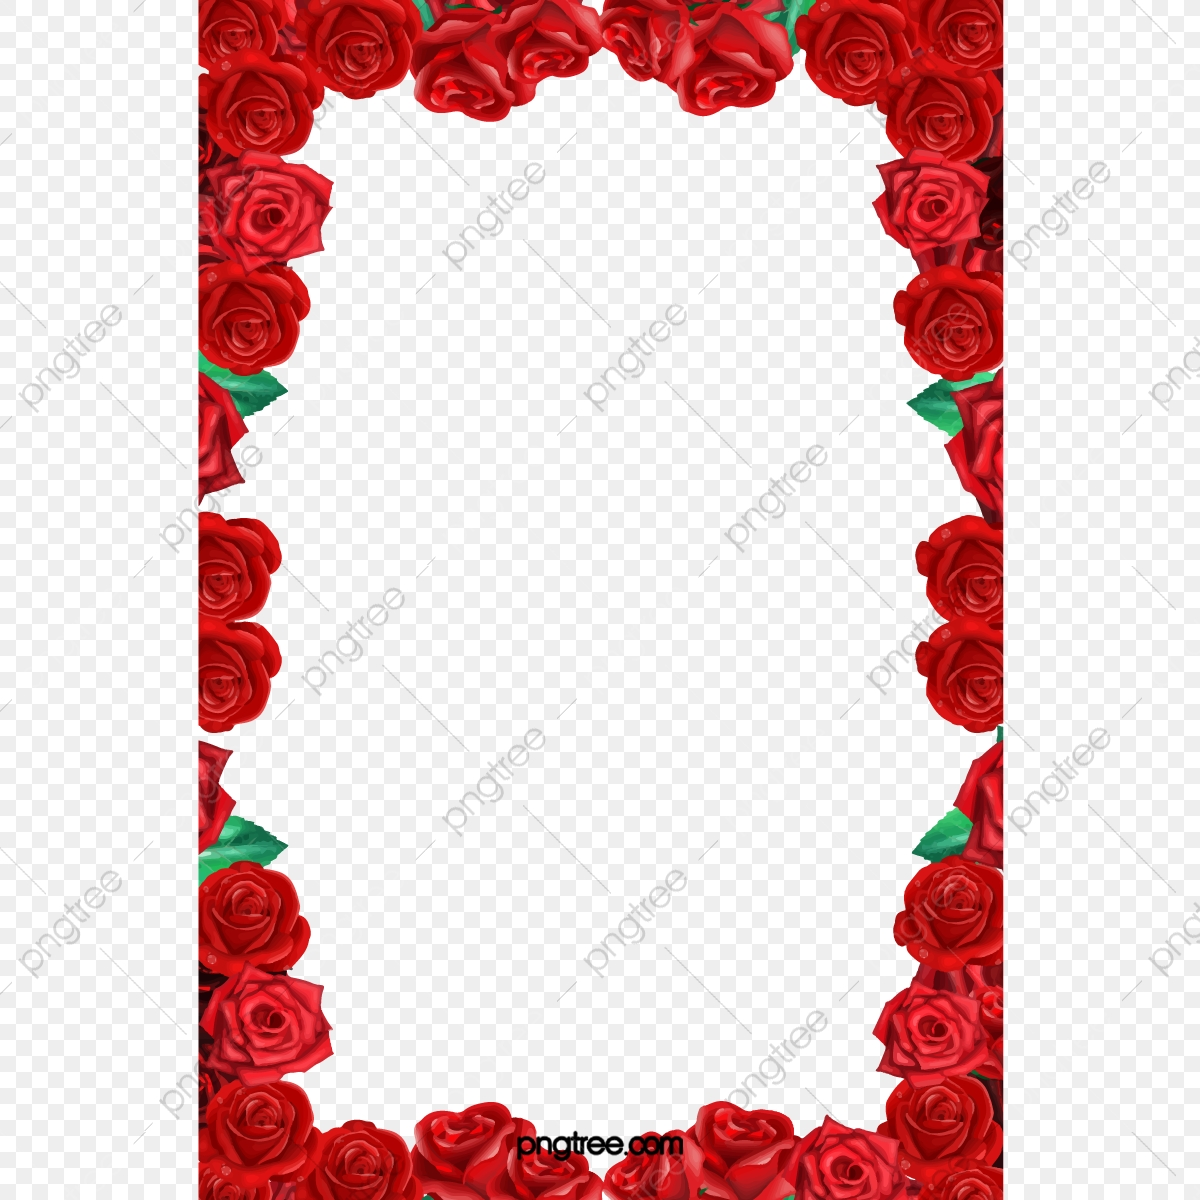 Rose Border, Rose Clipart, Red Rose, Frame PNG Transparent Clipart.